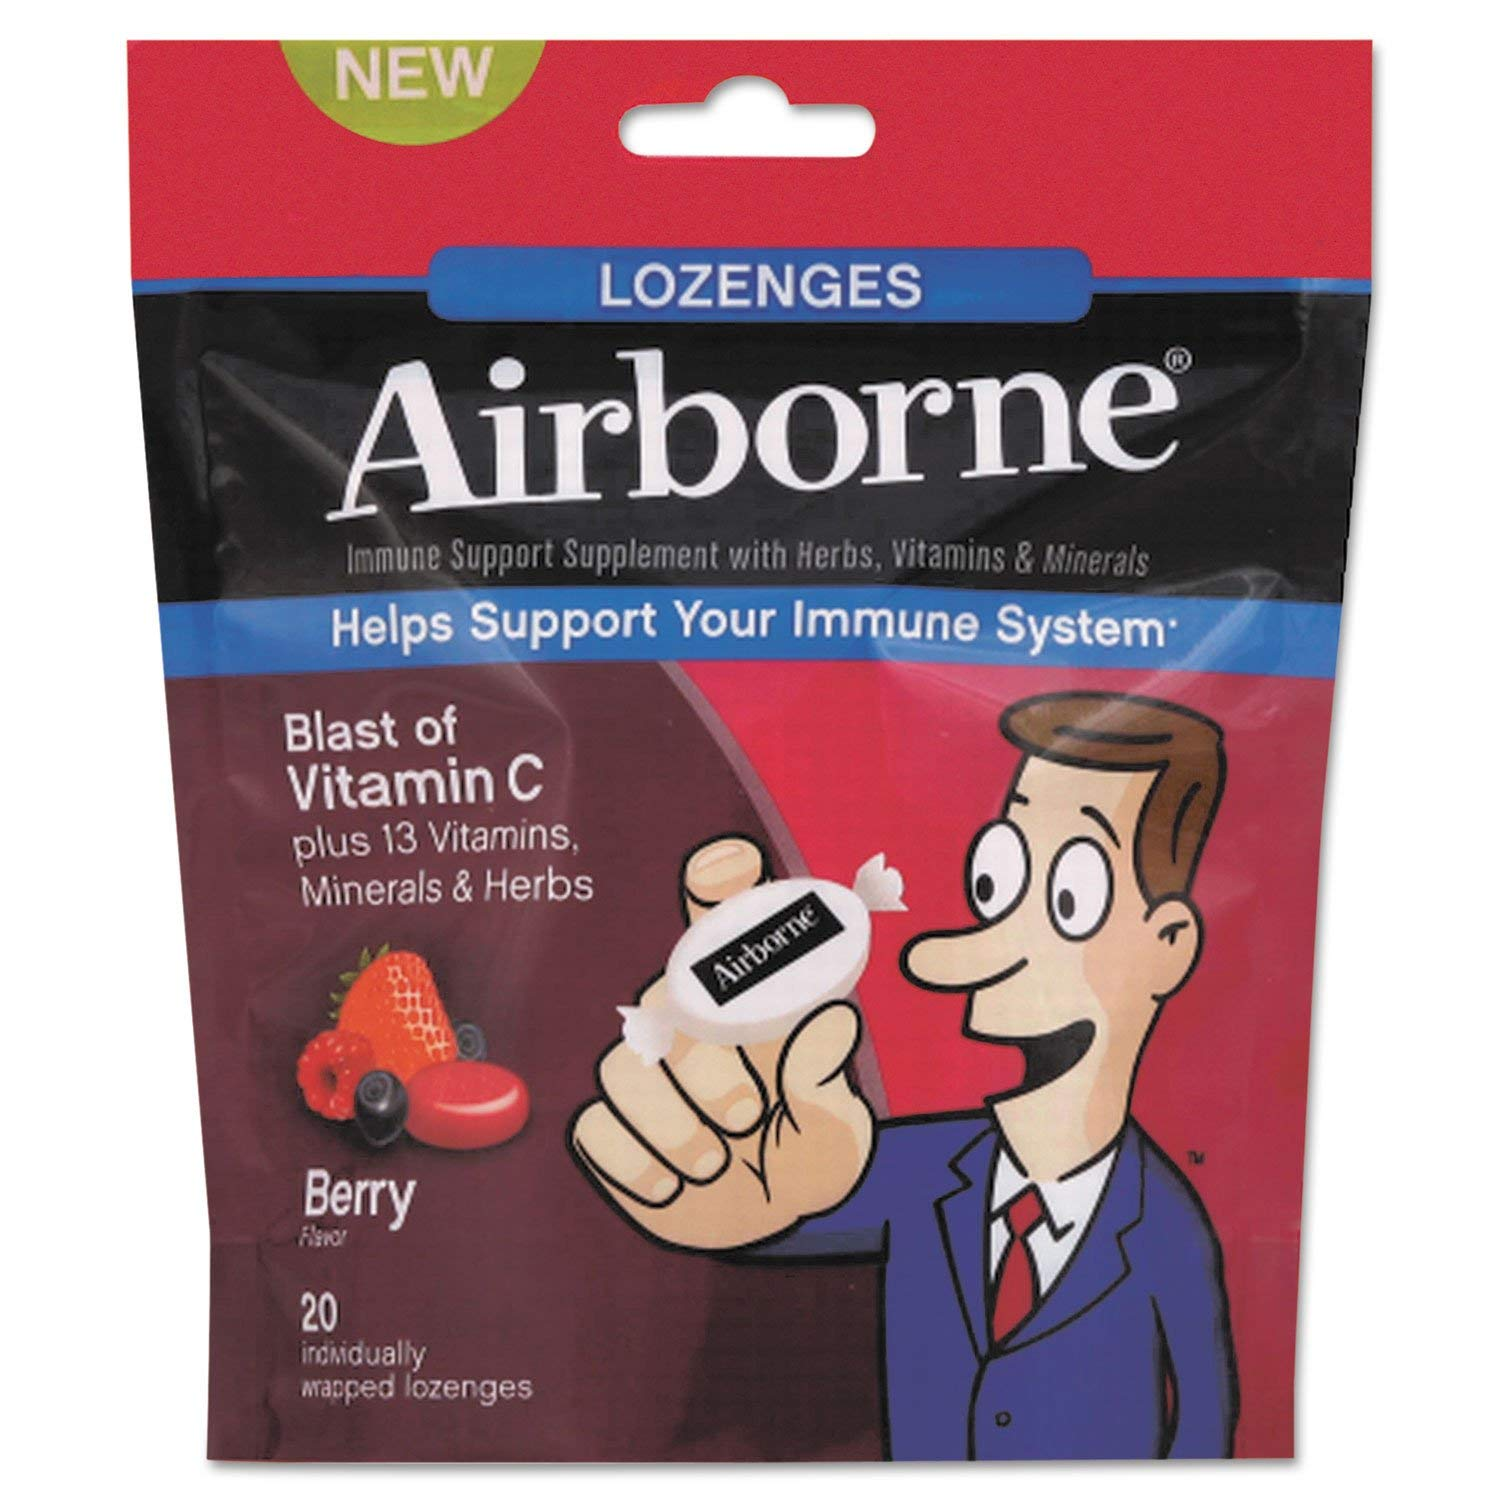 Airborne 18591CT Immune Support Lozenge, Berry Flavor, 20/PK, 12 PK/CT by Airborne